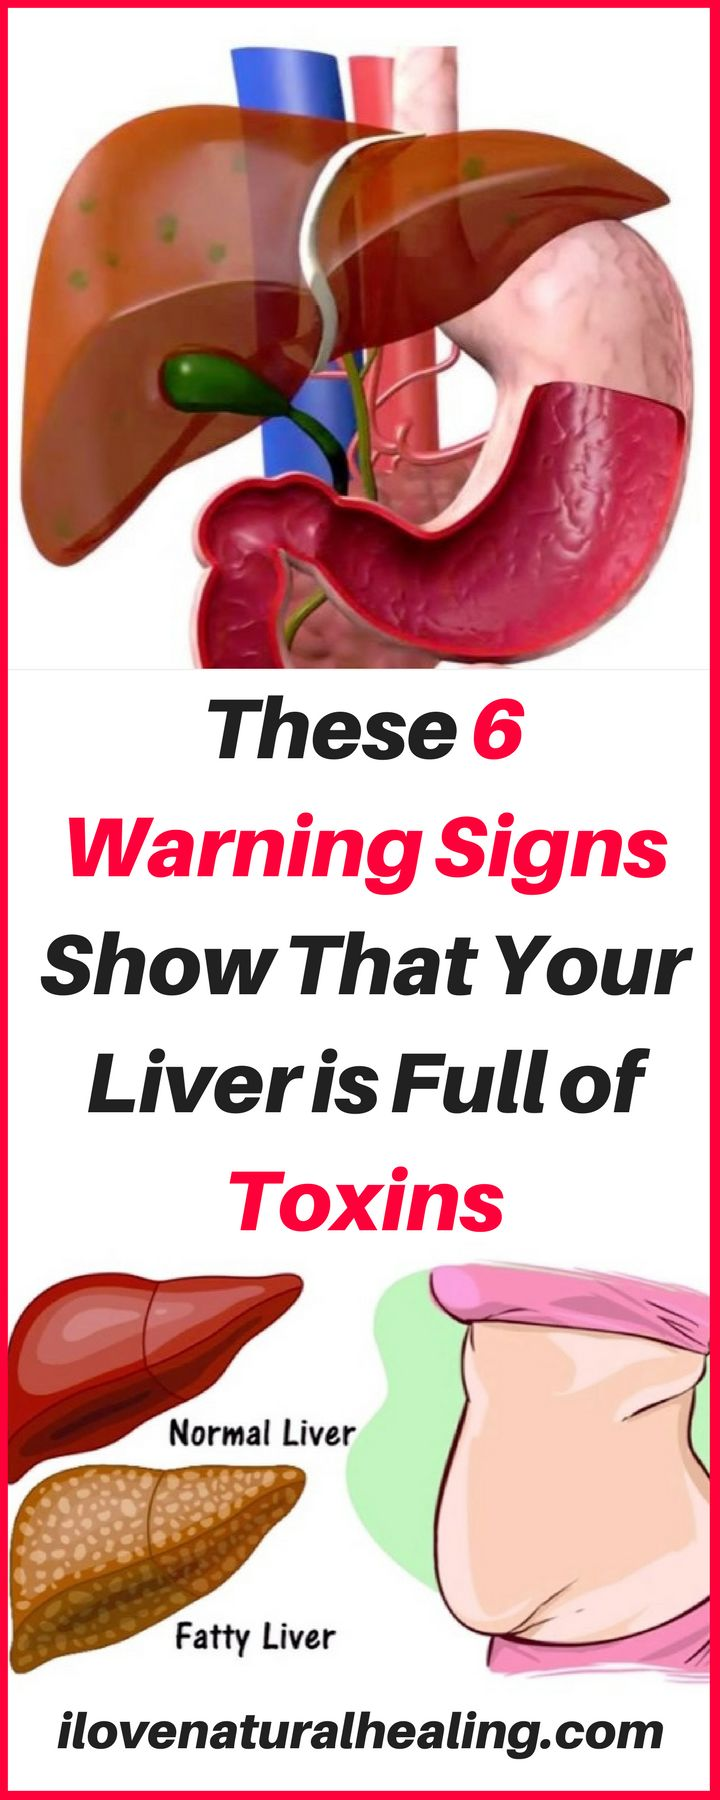 If not for the liver, toxins may accumulate in your body and cause numerous health problems.Here are 6 warning signs show that your liver is full of toxins.